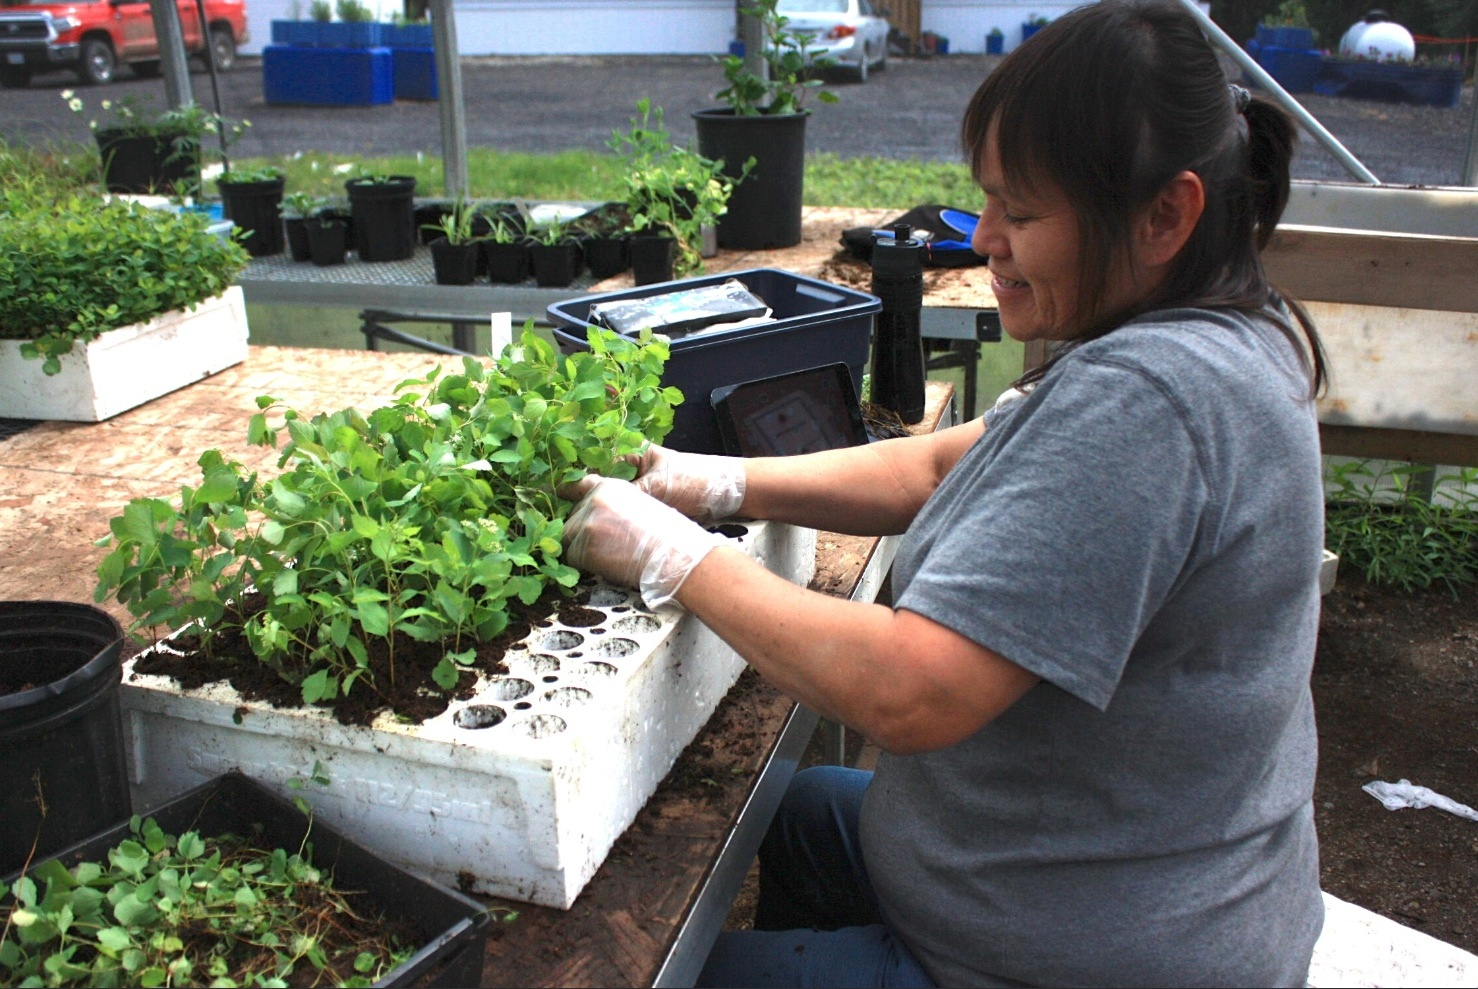 Delain Gauthier works on thinning out starter trays, choosing only the strongest of the new growth. - Mike Carter